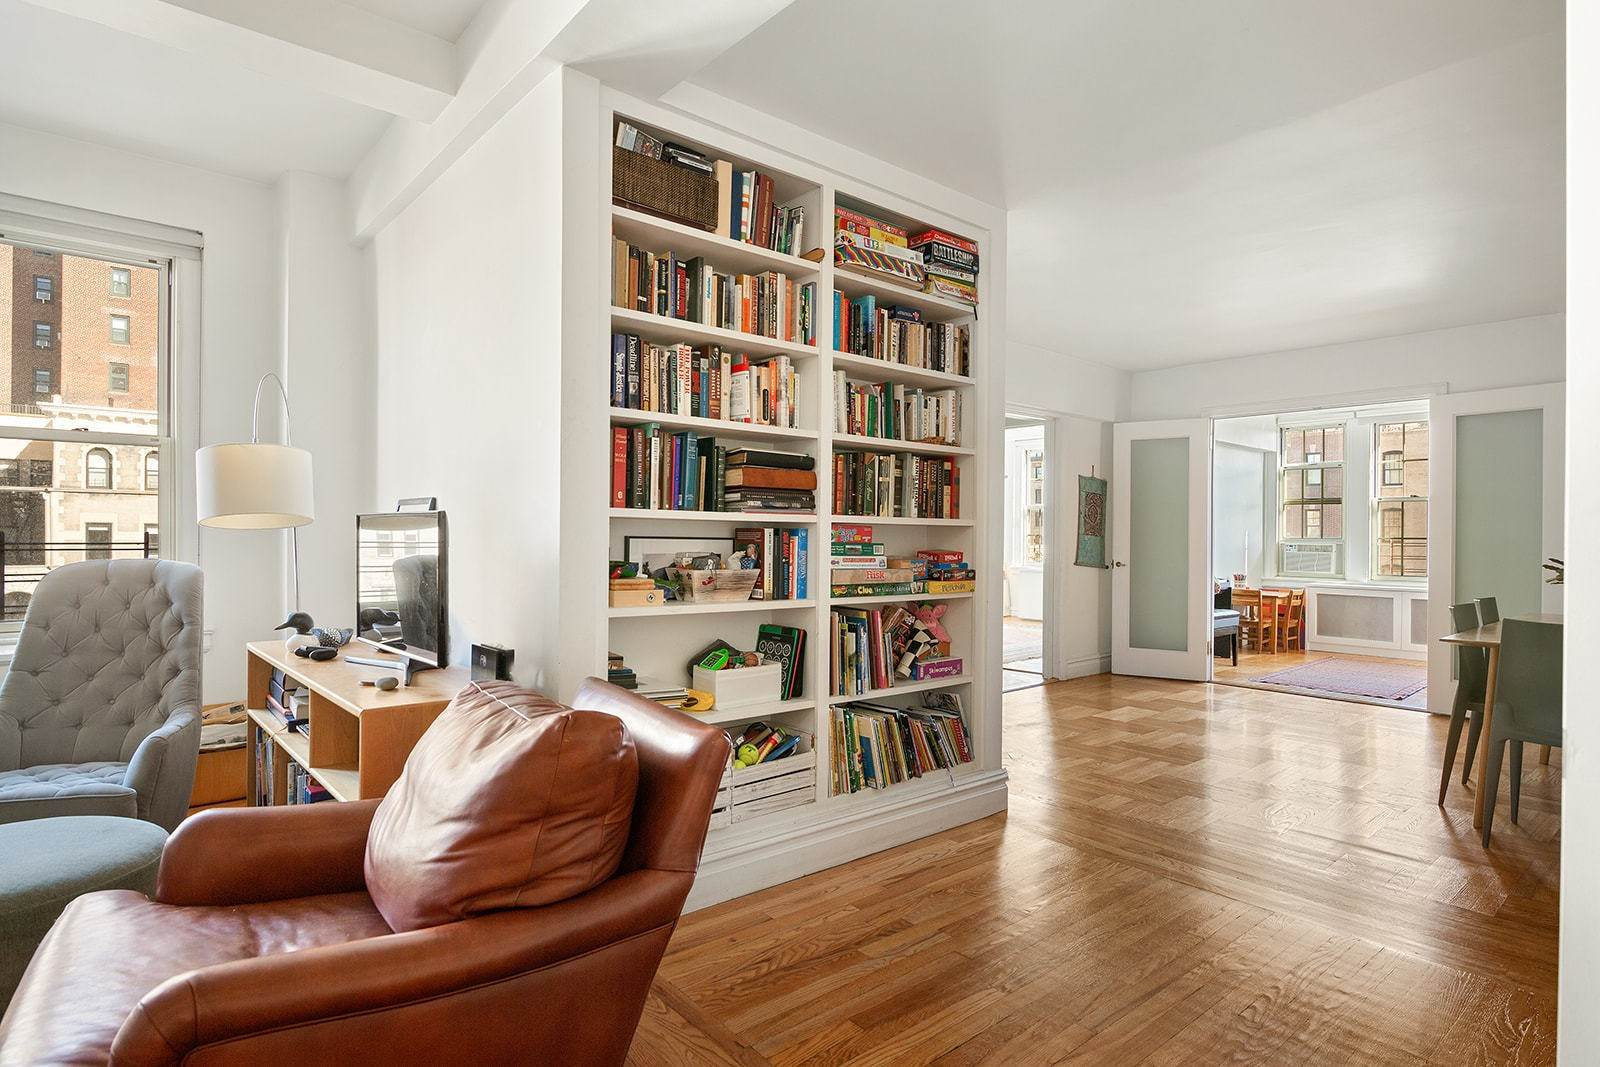 Co-op property for Sale at 35 Pierrepont Street, 8C, Brooklyn, New York,11201 United States